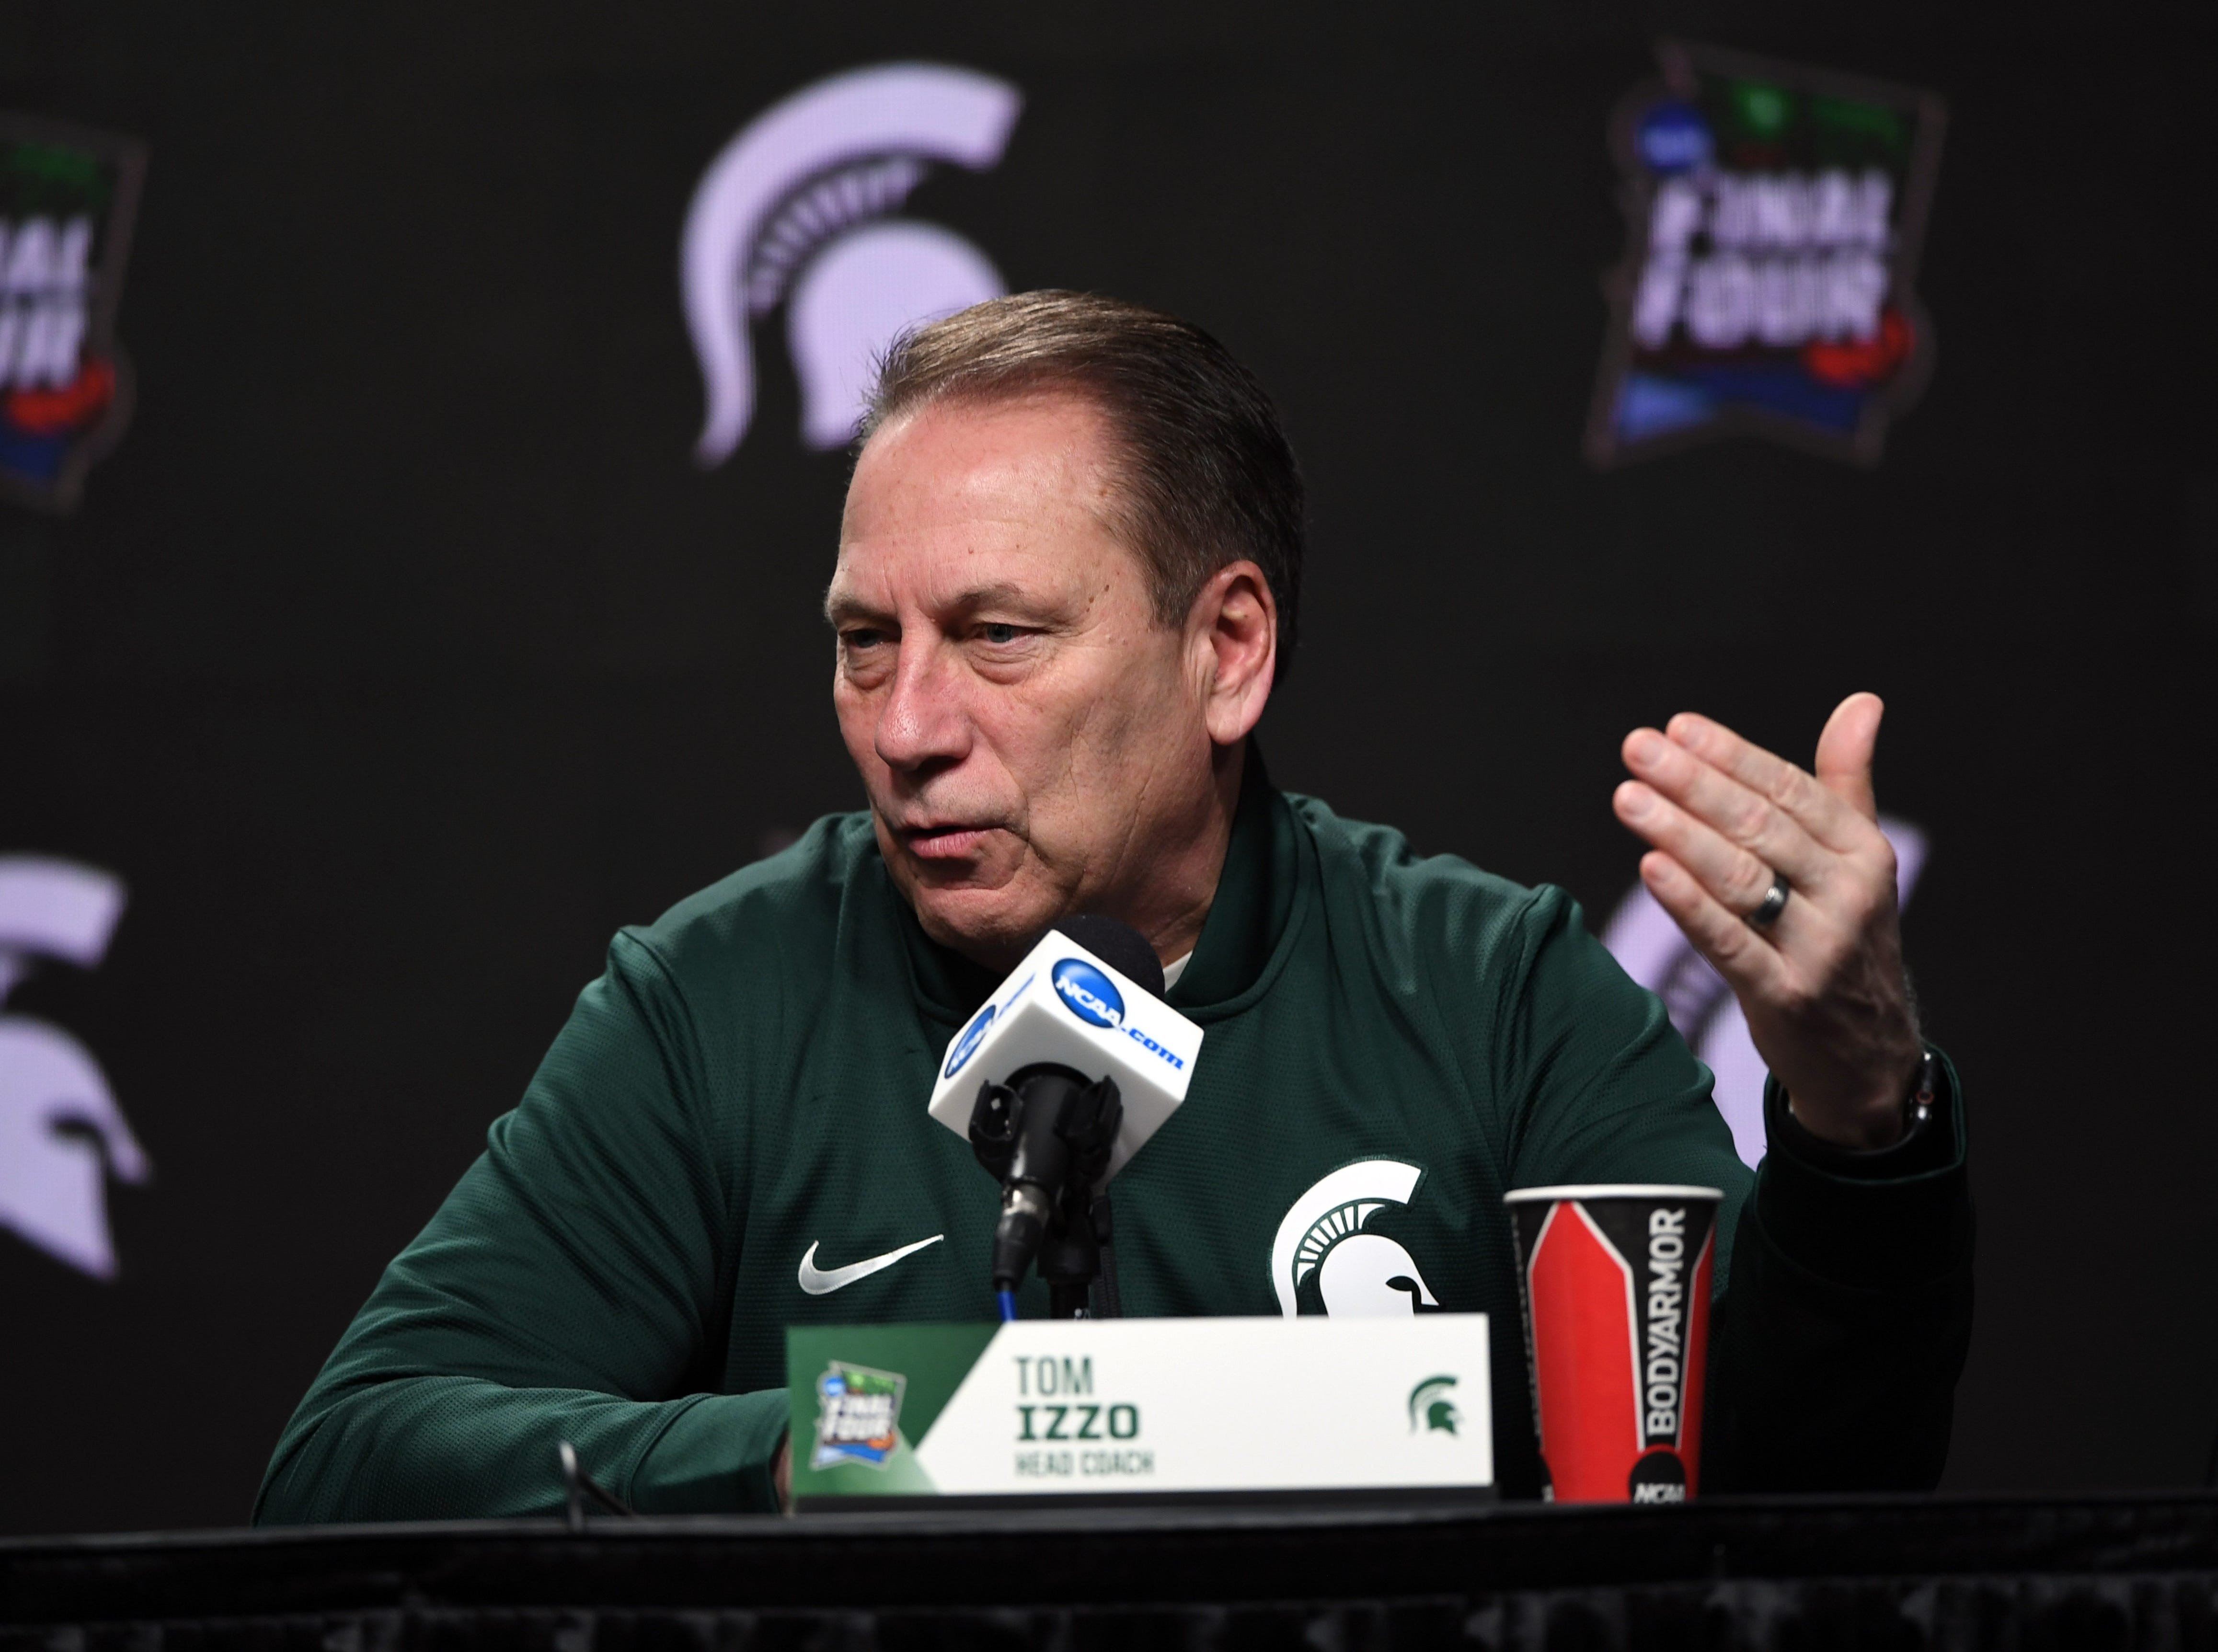 Apr 5, 2019; Minneapolis, MN, USA; Michigan State Spartans head coach Tom Izzo speaks during a press conference before practice for the 2019 men's Final Four at US Bank Stadium. Mandatory Credit: Shanna Lockwood-USA TODAY Sports